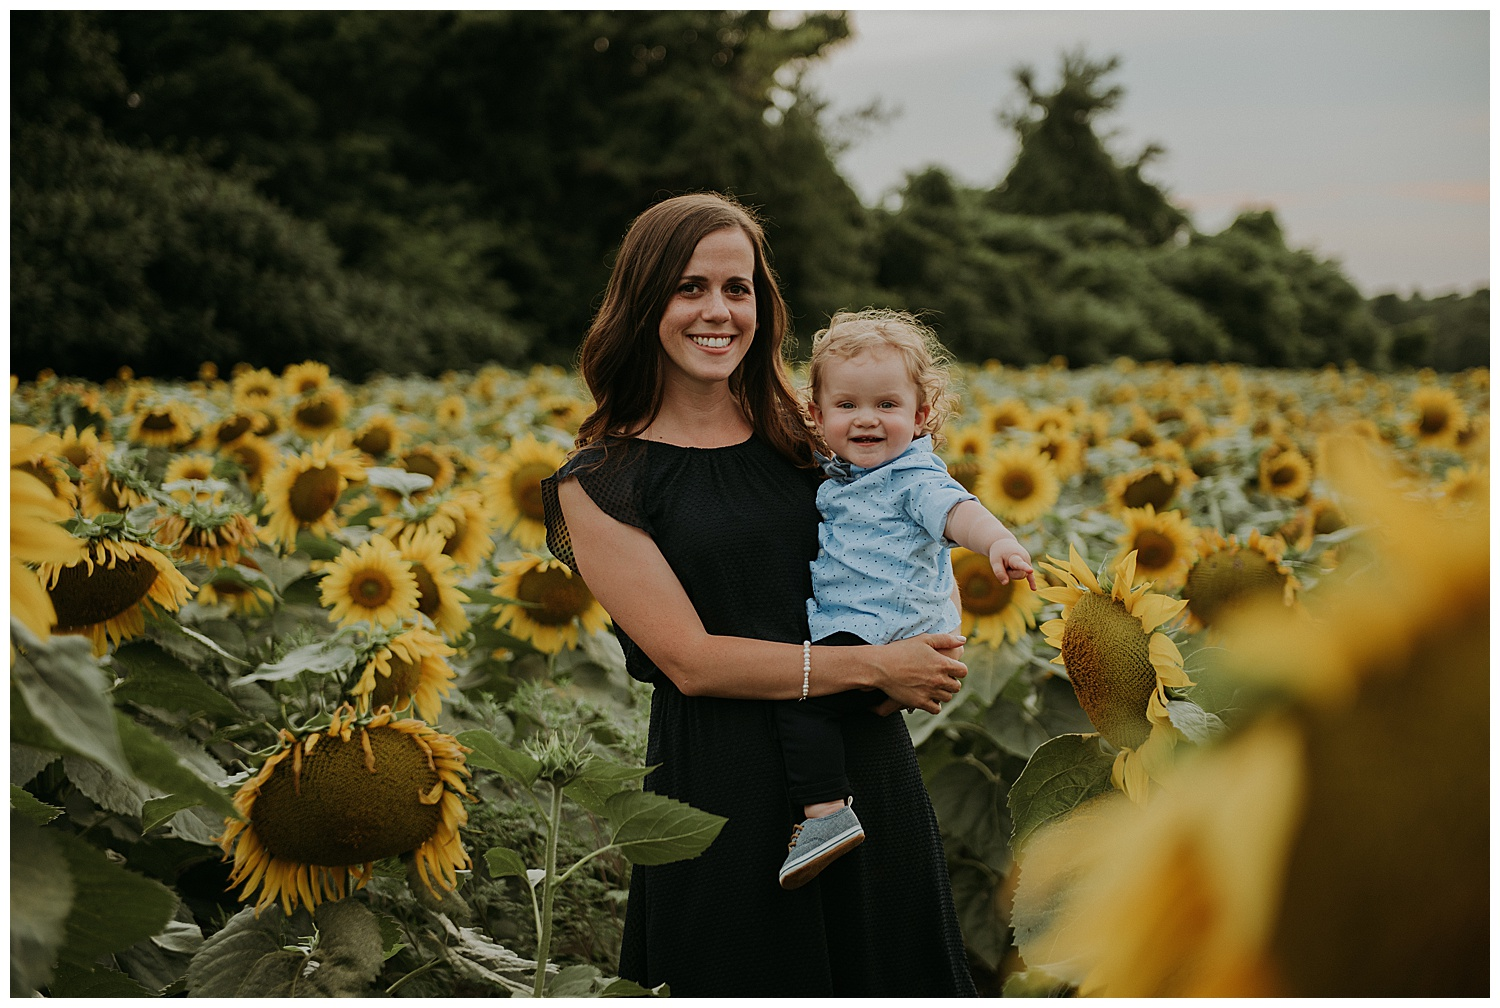 Holly McMurter Photographs | Prince Edward County Sunflower Family Session_0009.jpg